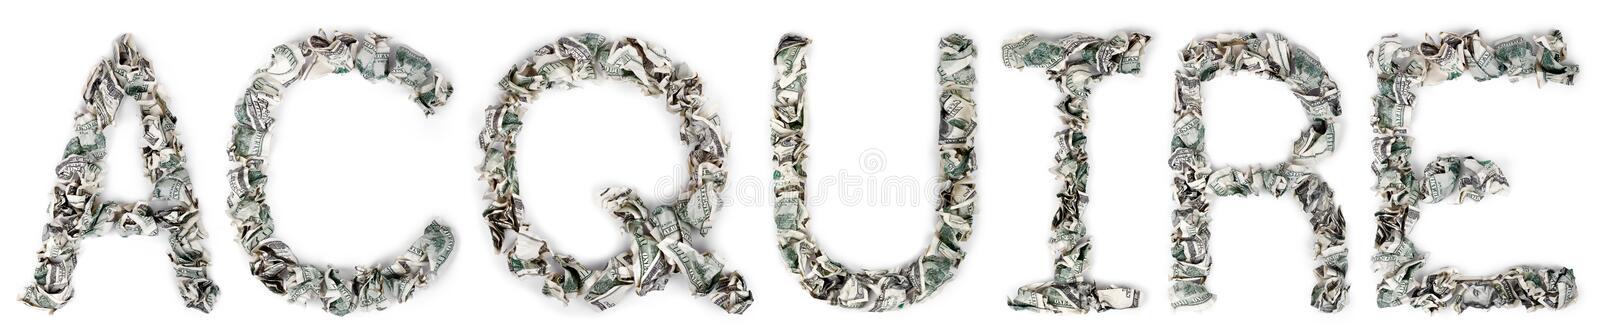 Download Acquire - Crimped 100$ Bills Stock Image - Image: 29762963